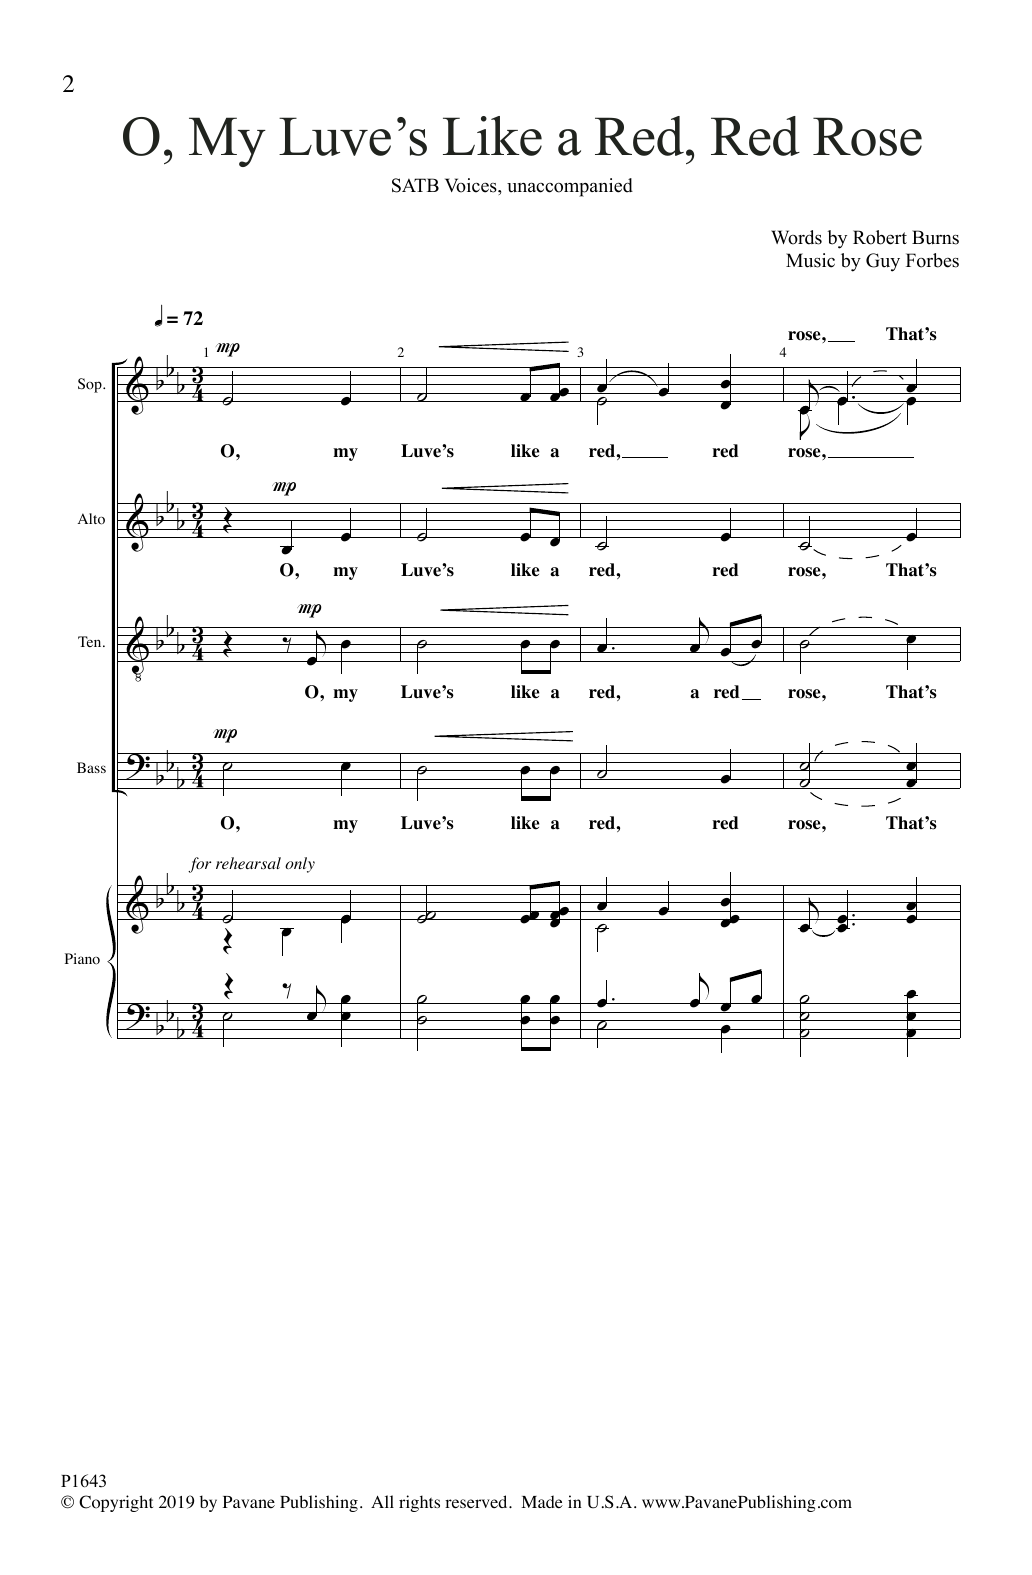 Robert Burns and Guy Forbes O, My Luve's Like a Red, Red Rose sheet music notes and chords. Download Printable PDF.